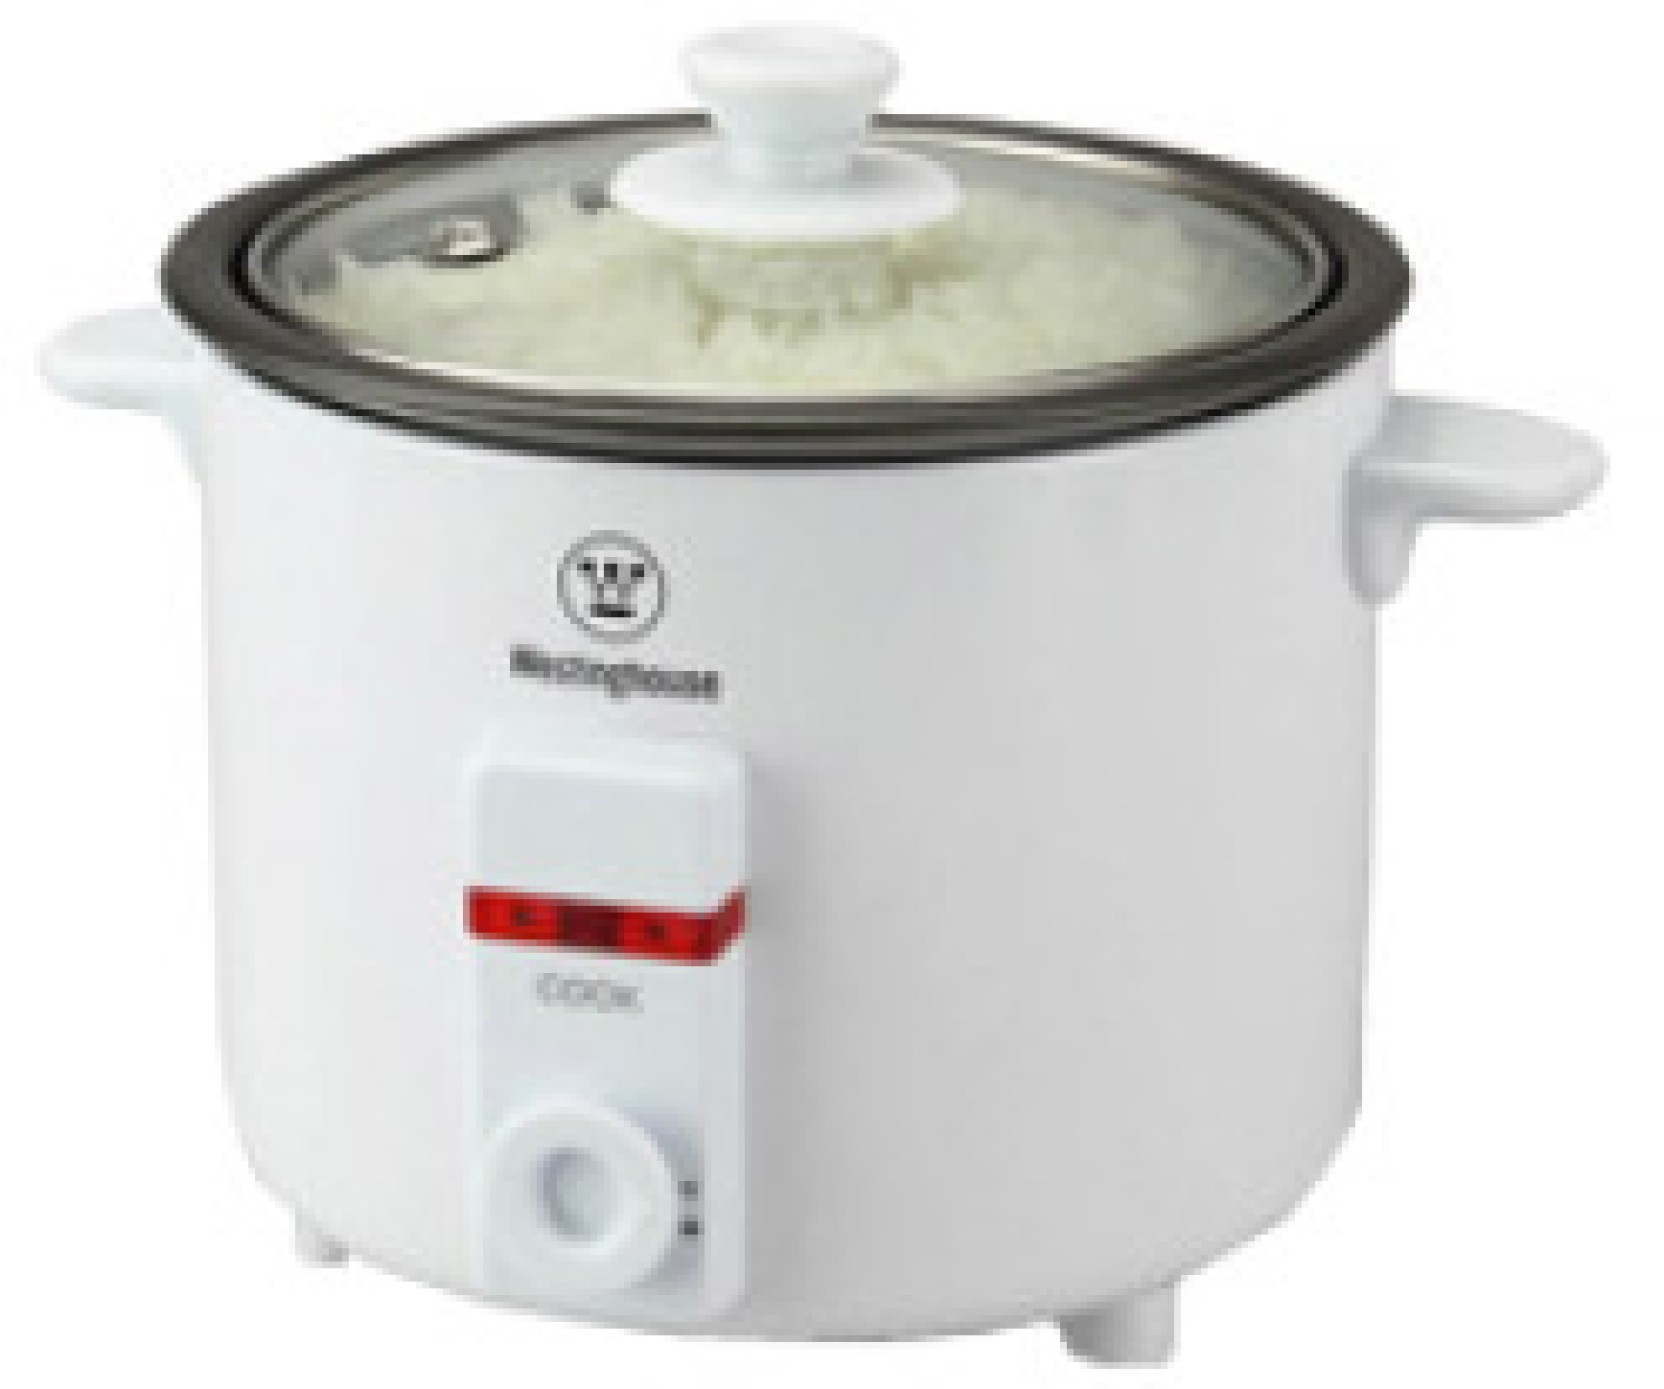 Cooking With Electric Rice Steamer ~ Westinghouse wkrc electric rice cooker with steaming